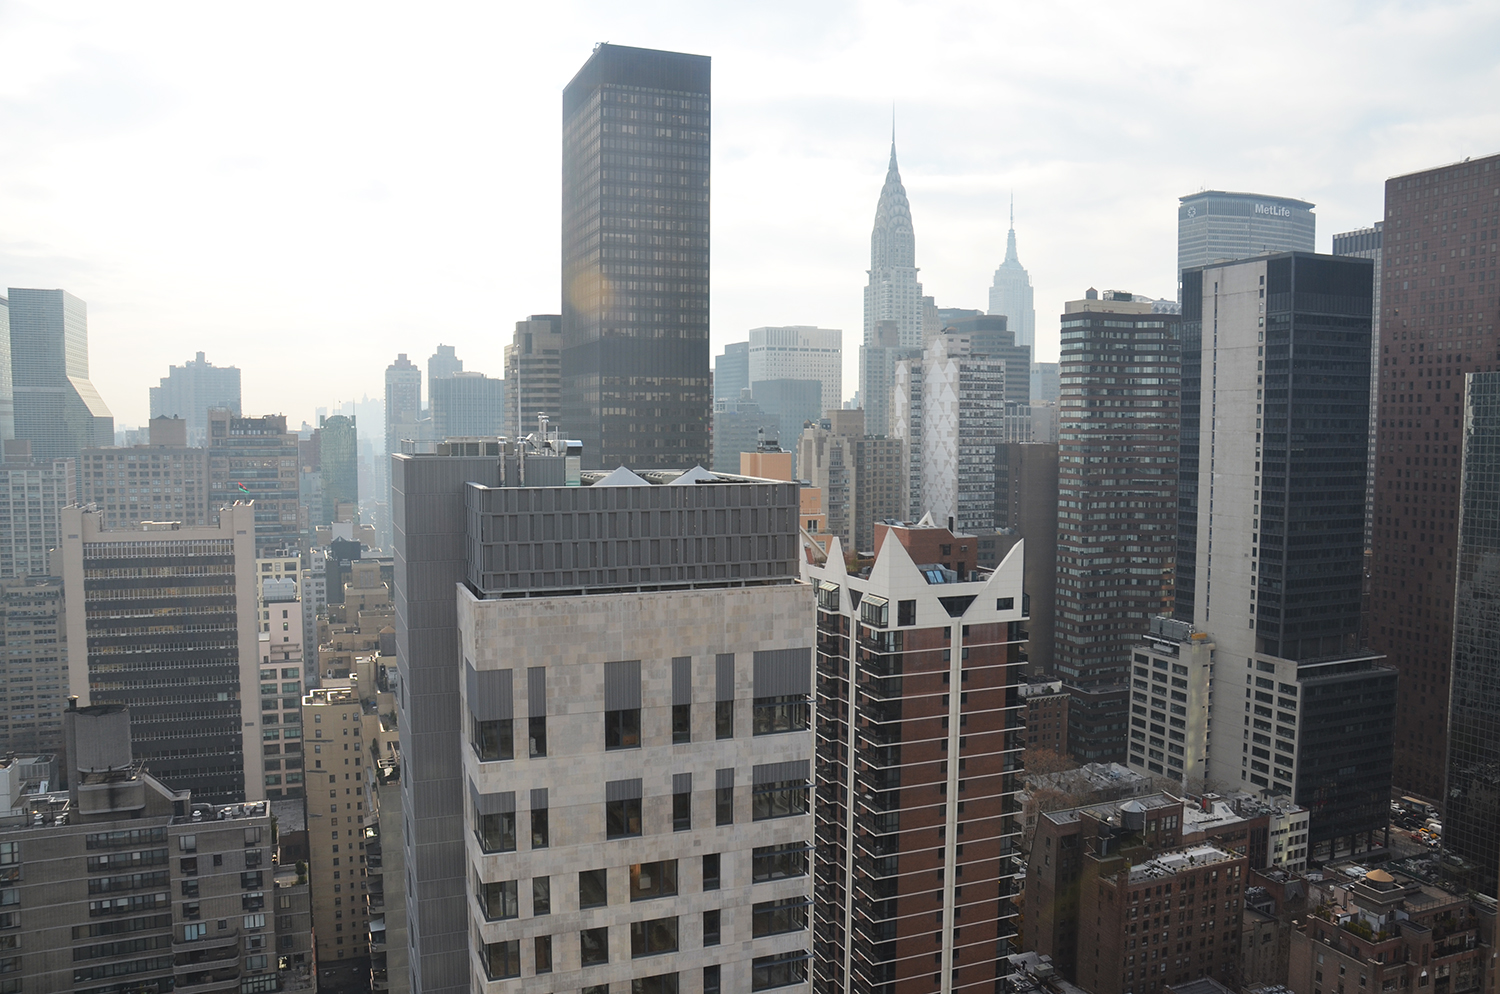 View from the 32nd floor of Halcyon at 305 East 51st Street. All photographs by Evan Bindelglass unless otherwise noted.